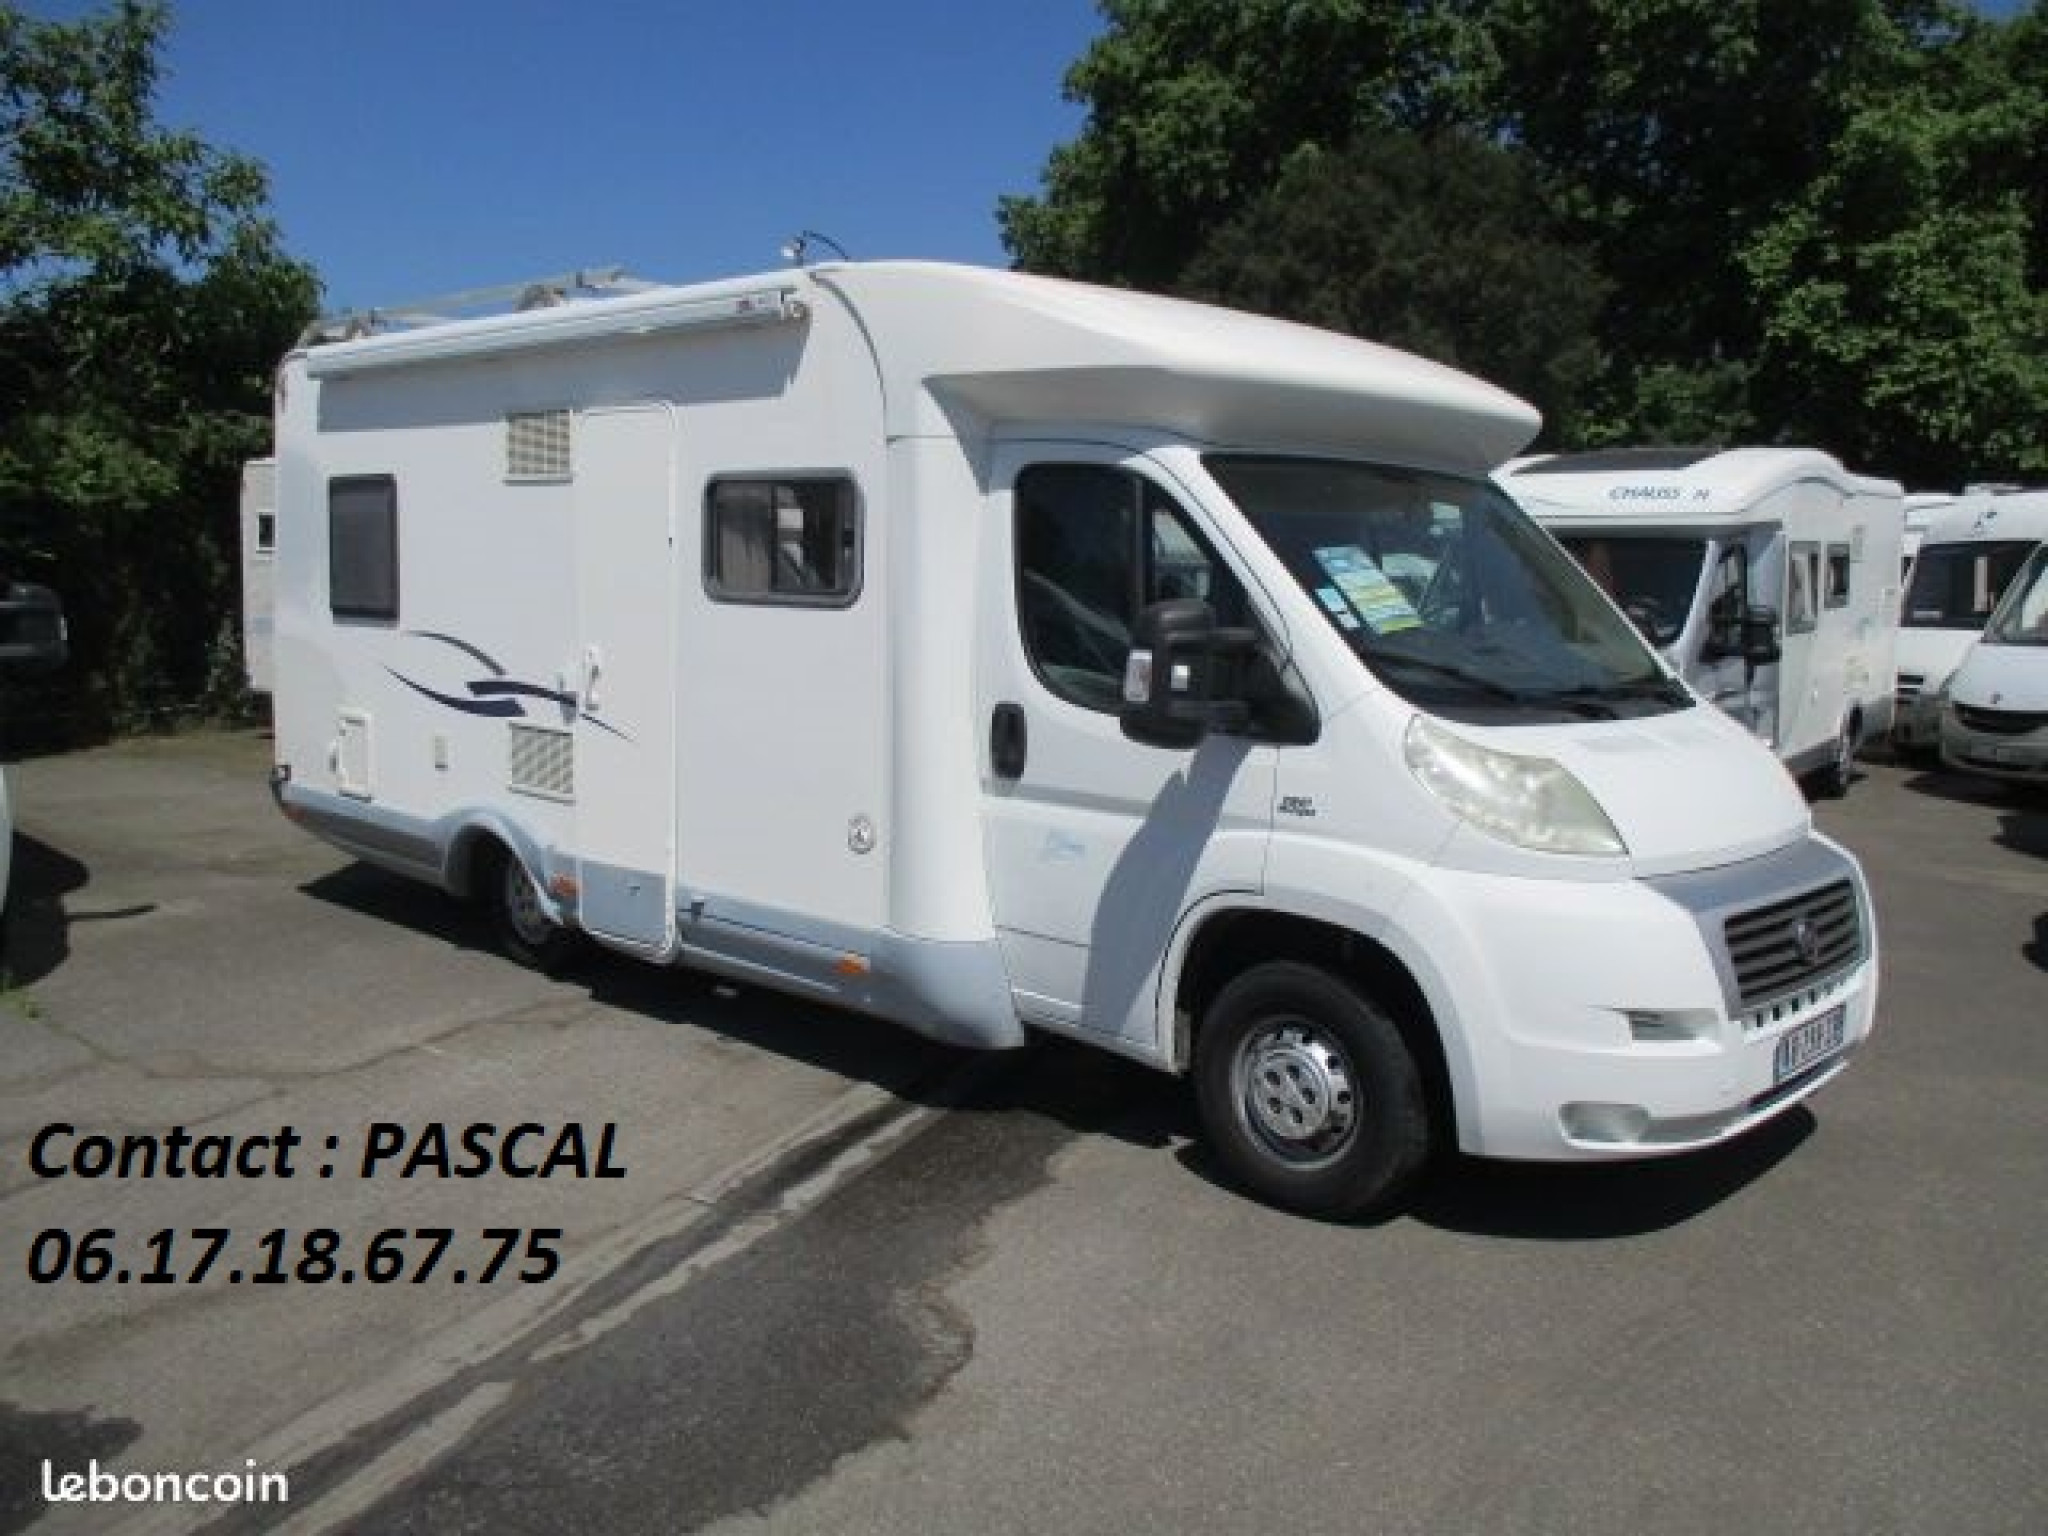 Camping-car SEA SEA BLUE CAMP - LIT FRANCAISE - 40 292 kms - CLIM